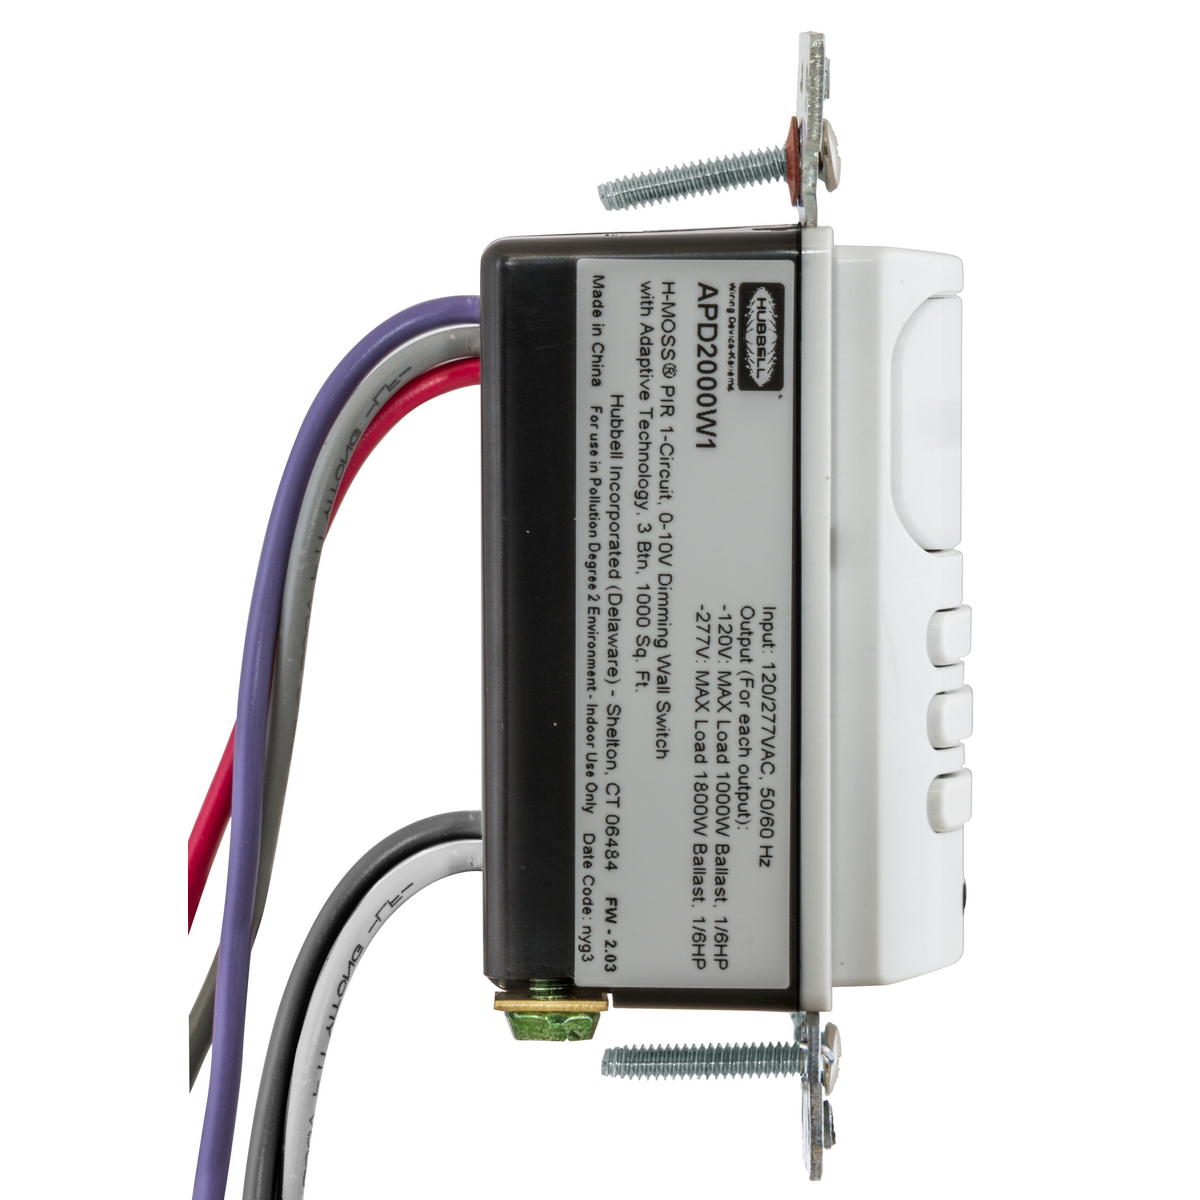 Apd2000w1 | wall switch sensors | lighting controls | wiring.